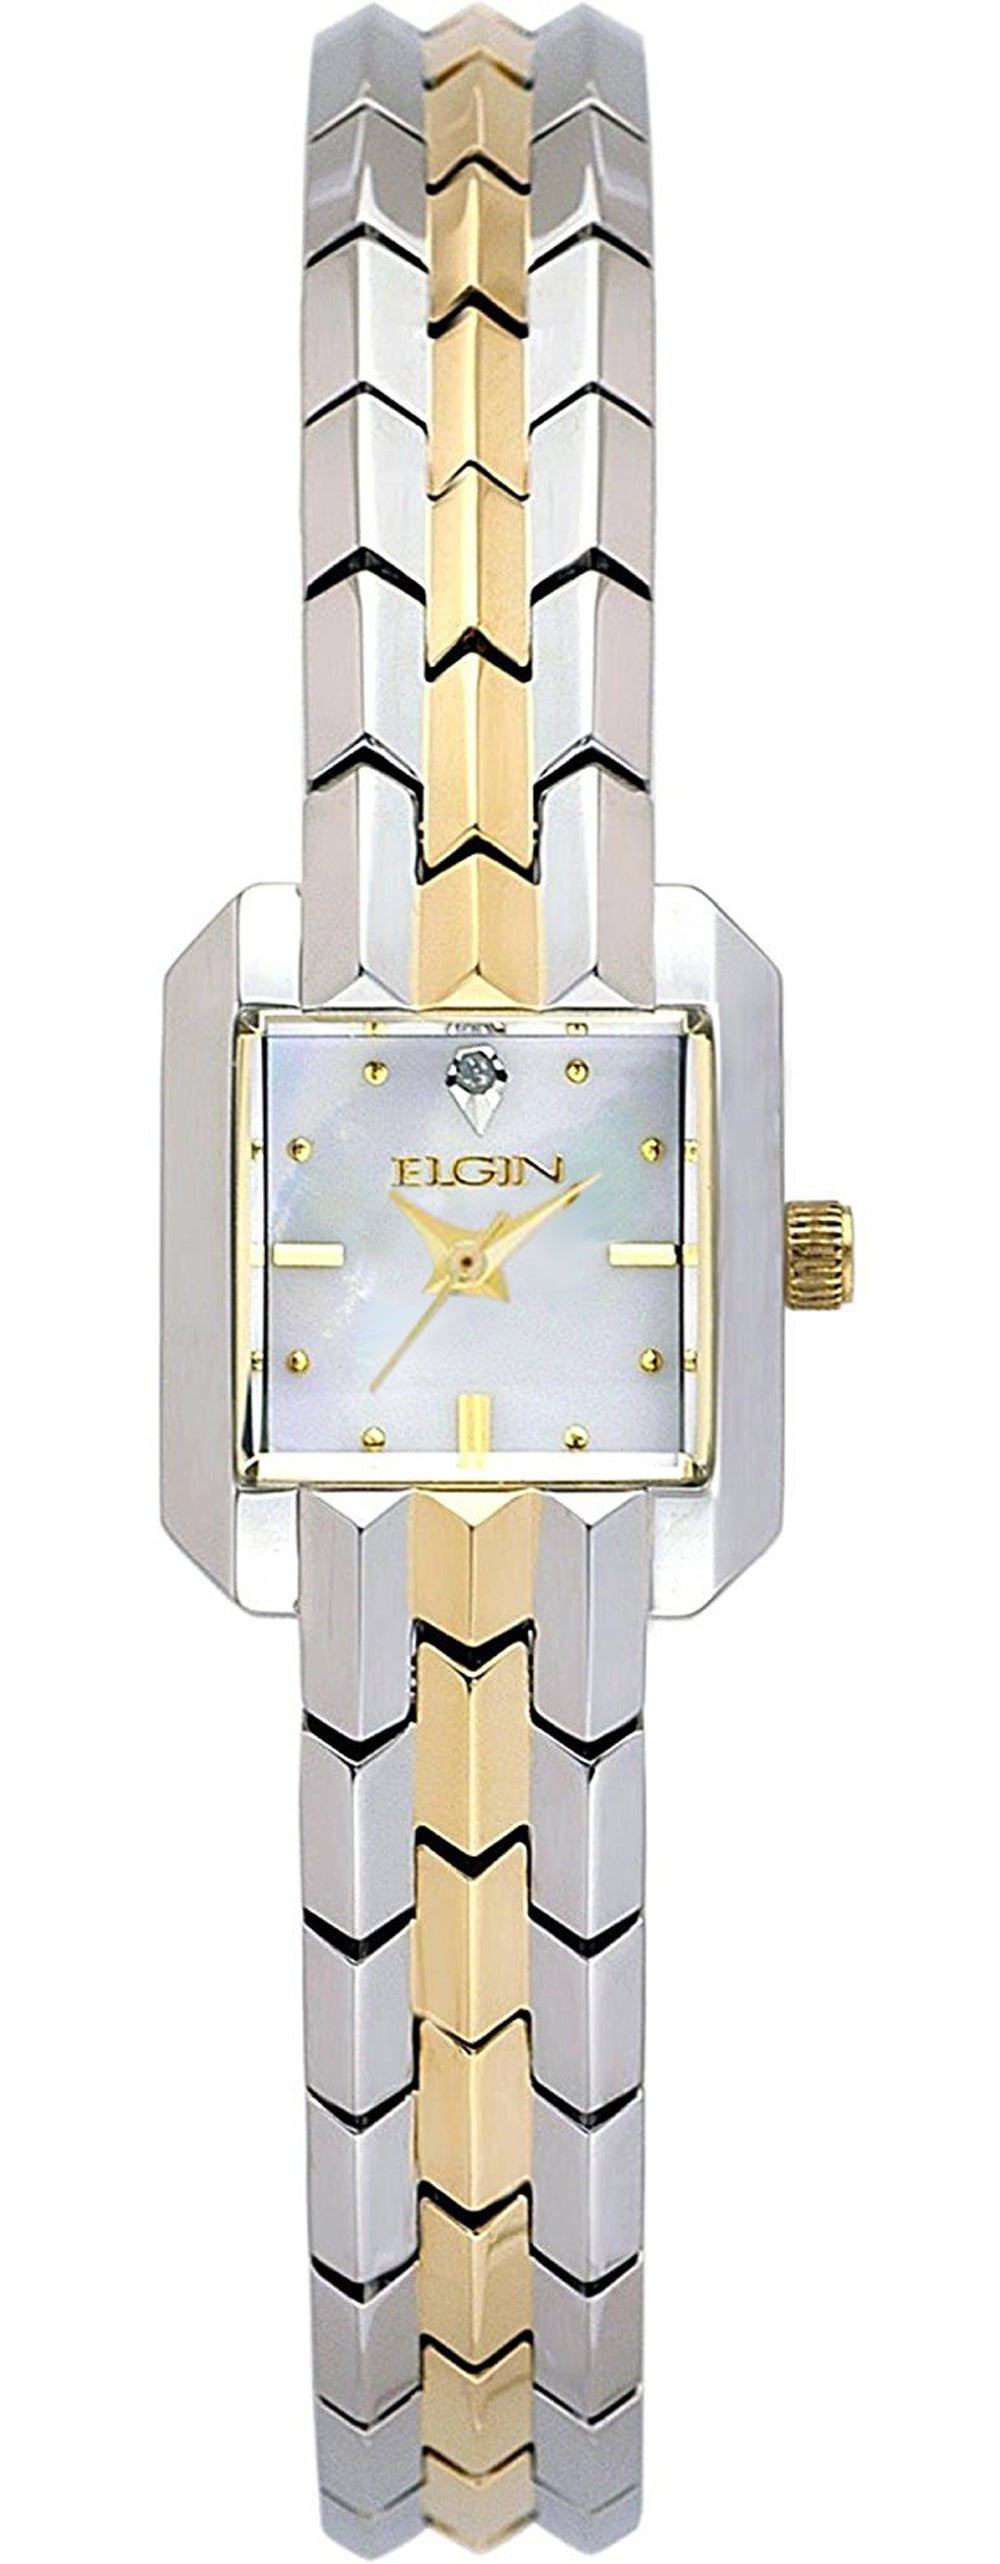 Women's Two-Tone Square Case White Mother of Pearl Dial Polished Bracelet Watch - EG287